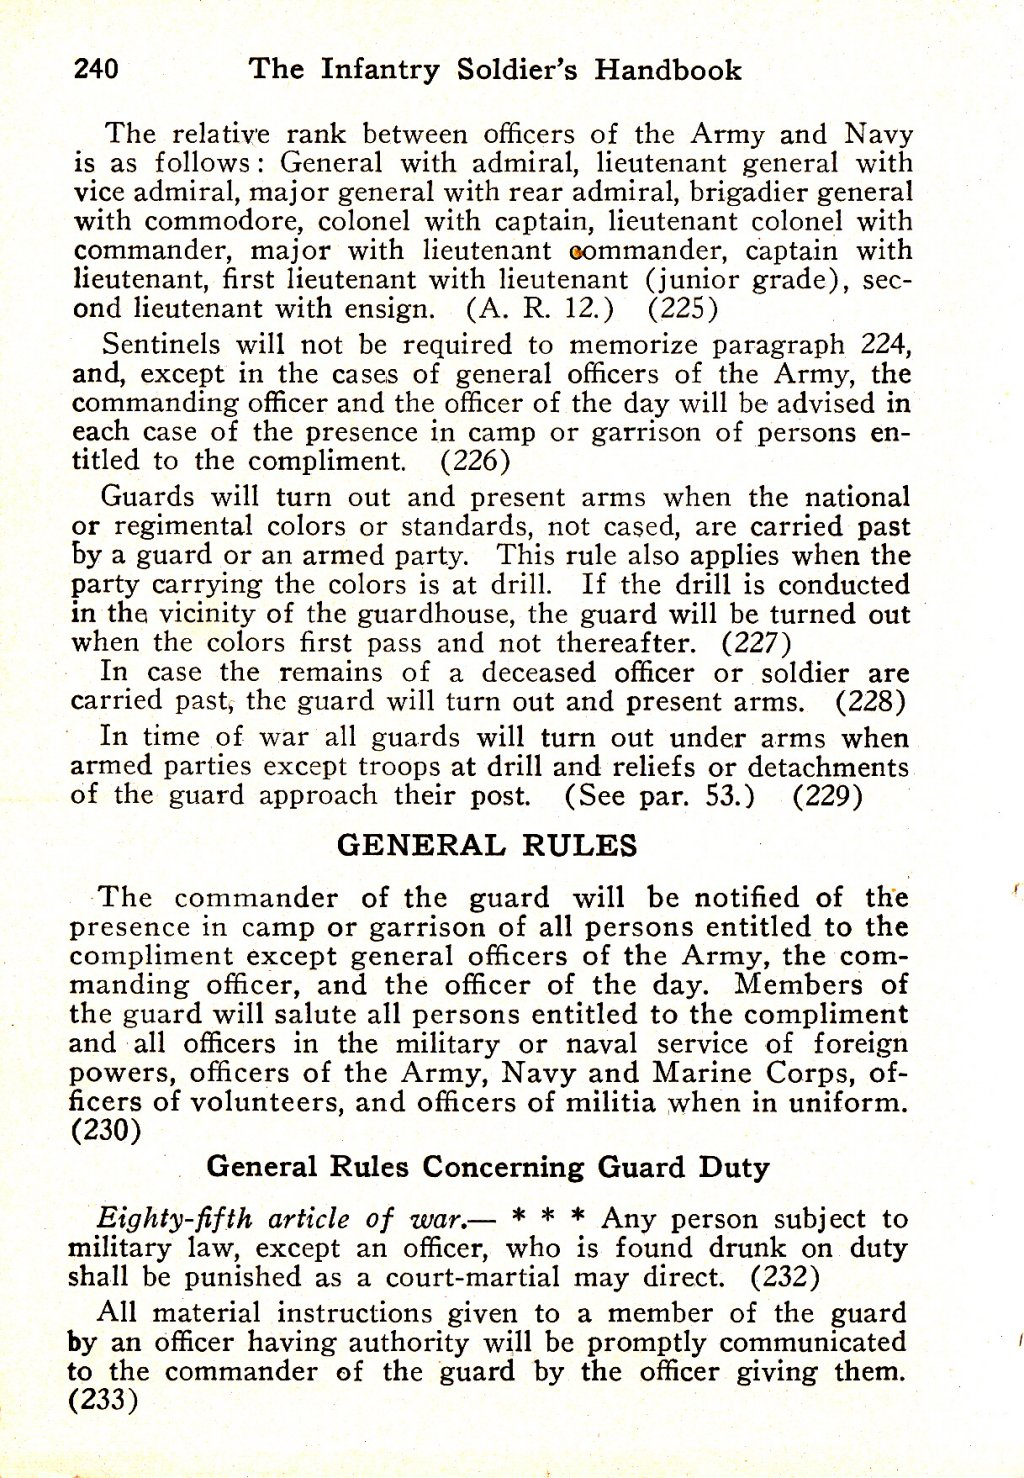 314th Infantry Regiment - Infantry Soldiers Handbook - Waldron - Page 240